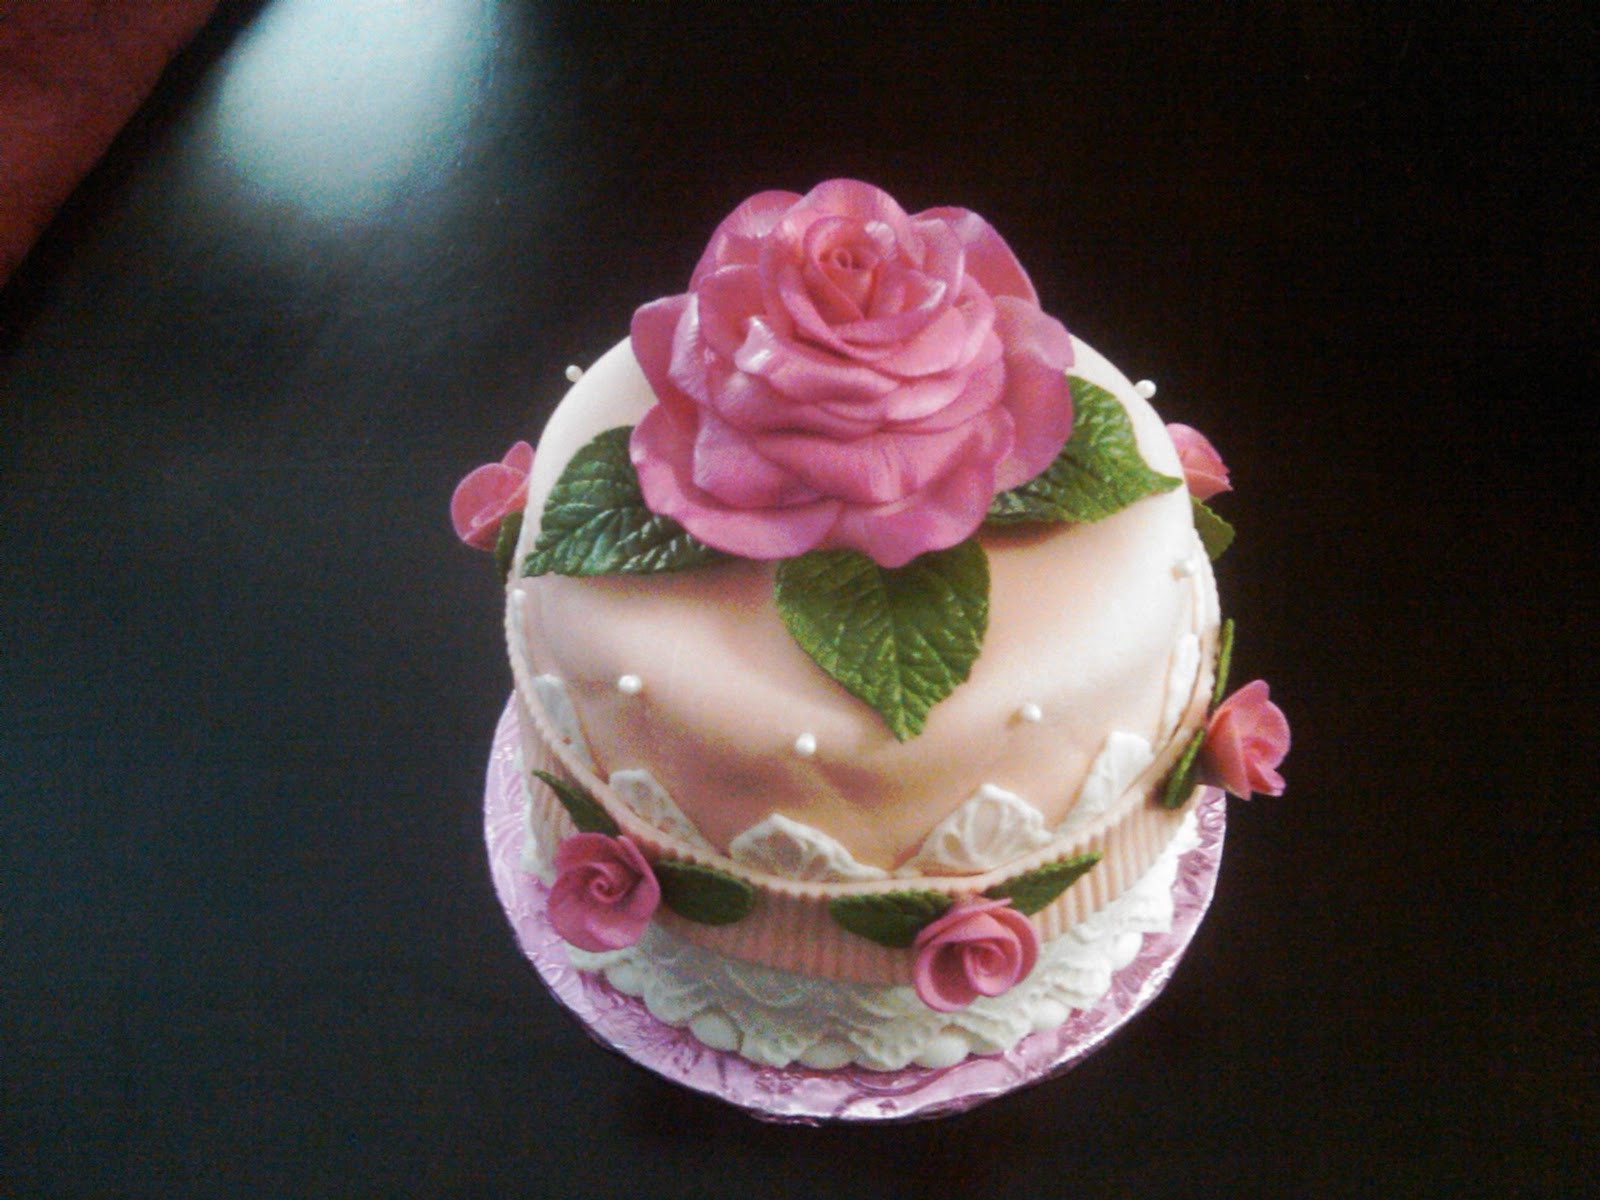 Best ideas about Roses Birthday Cake . Save or Pin Fabbylicious Cakes Rose Birthday Cake Now.